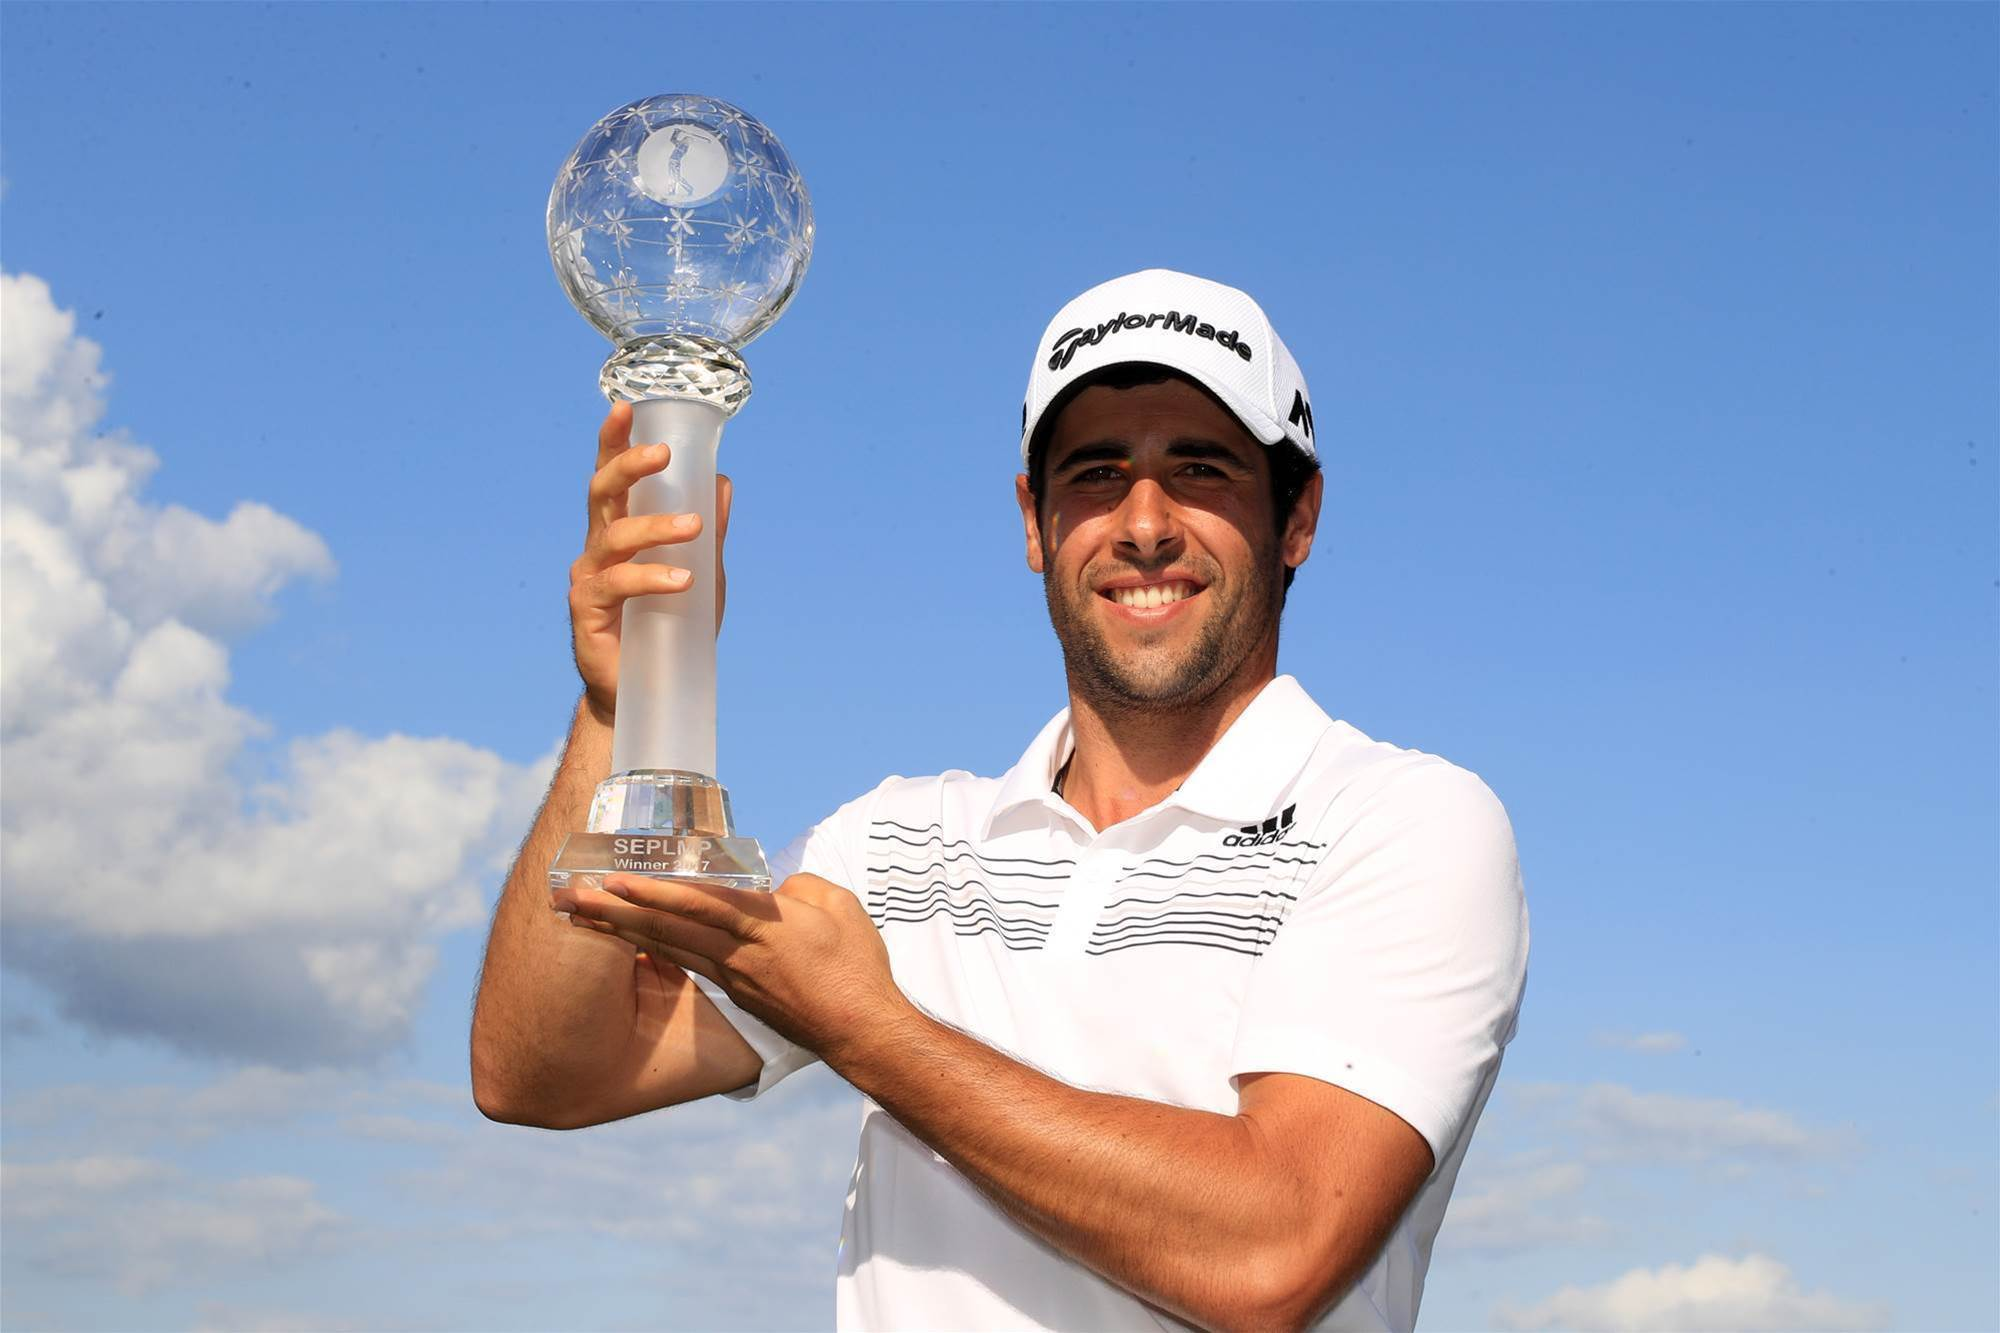 EURO TOUR: Otaegui stuns Siem to win Paul Lawrie Match Play